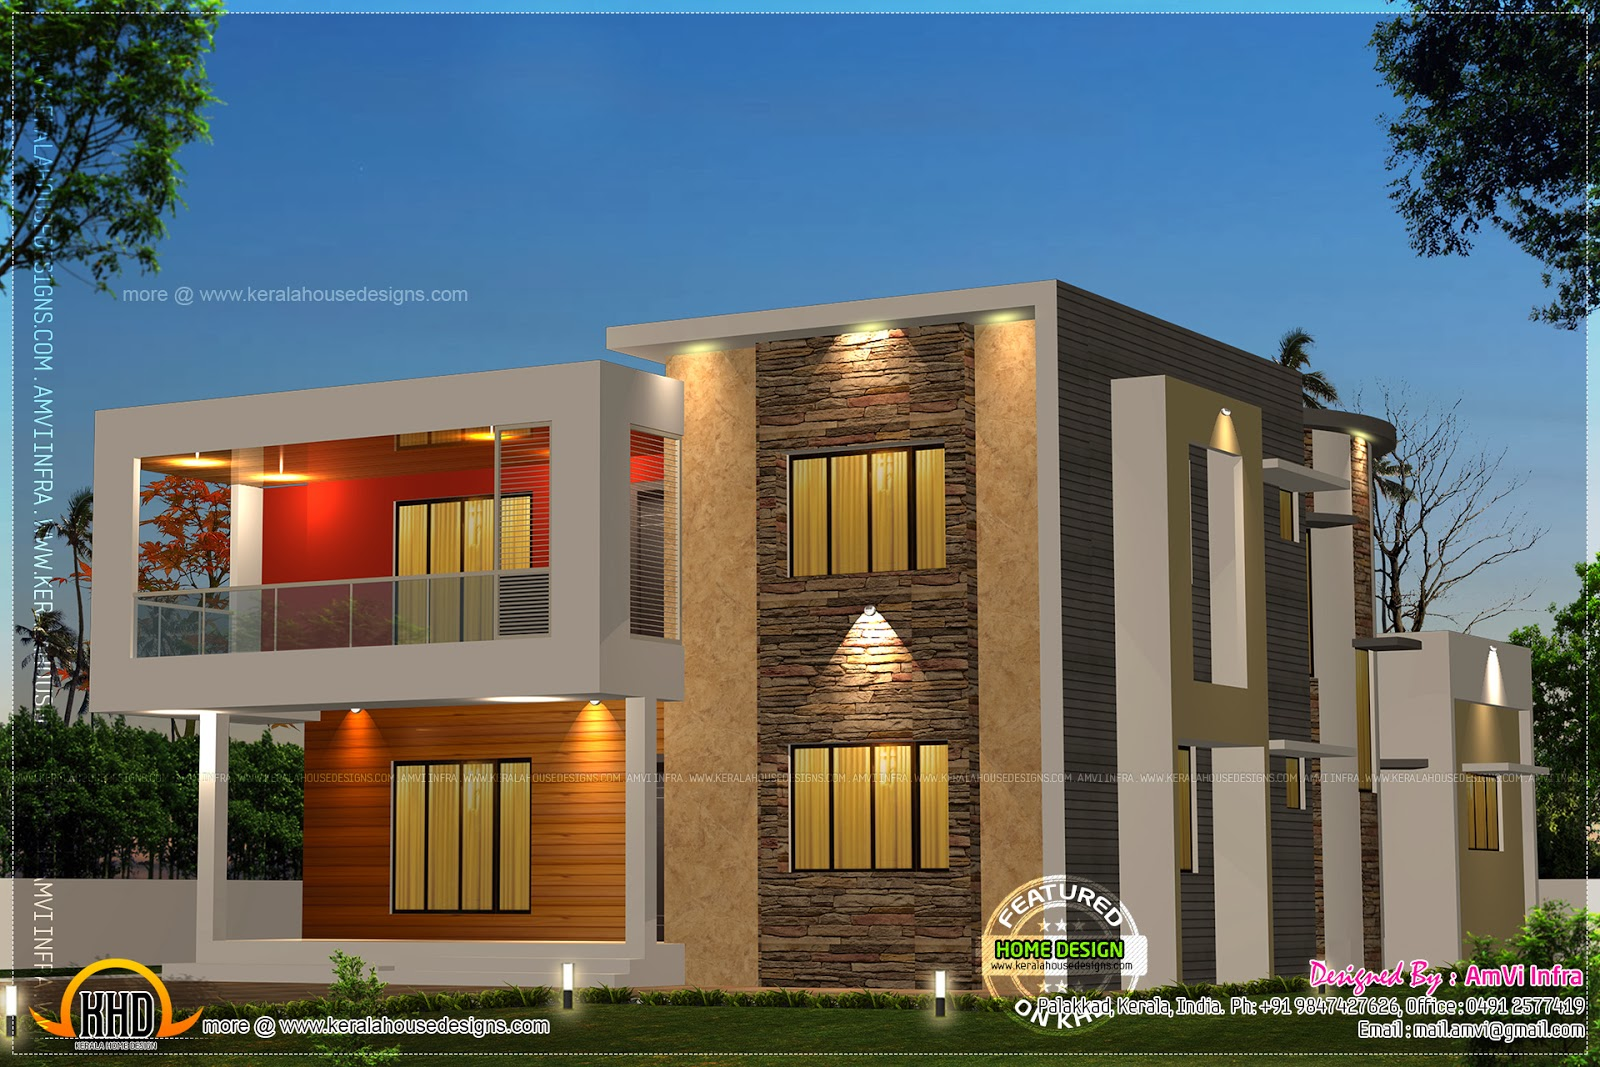 5 Bedroom Contemporary House With Plan Home Kerala Plans